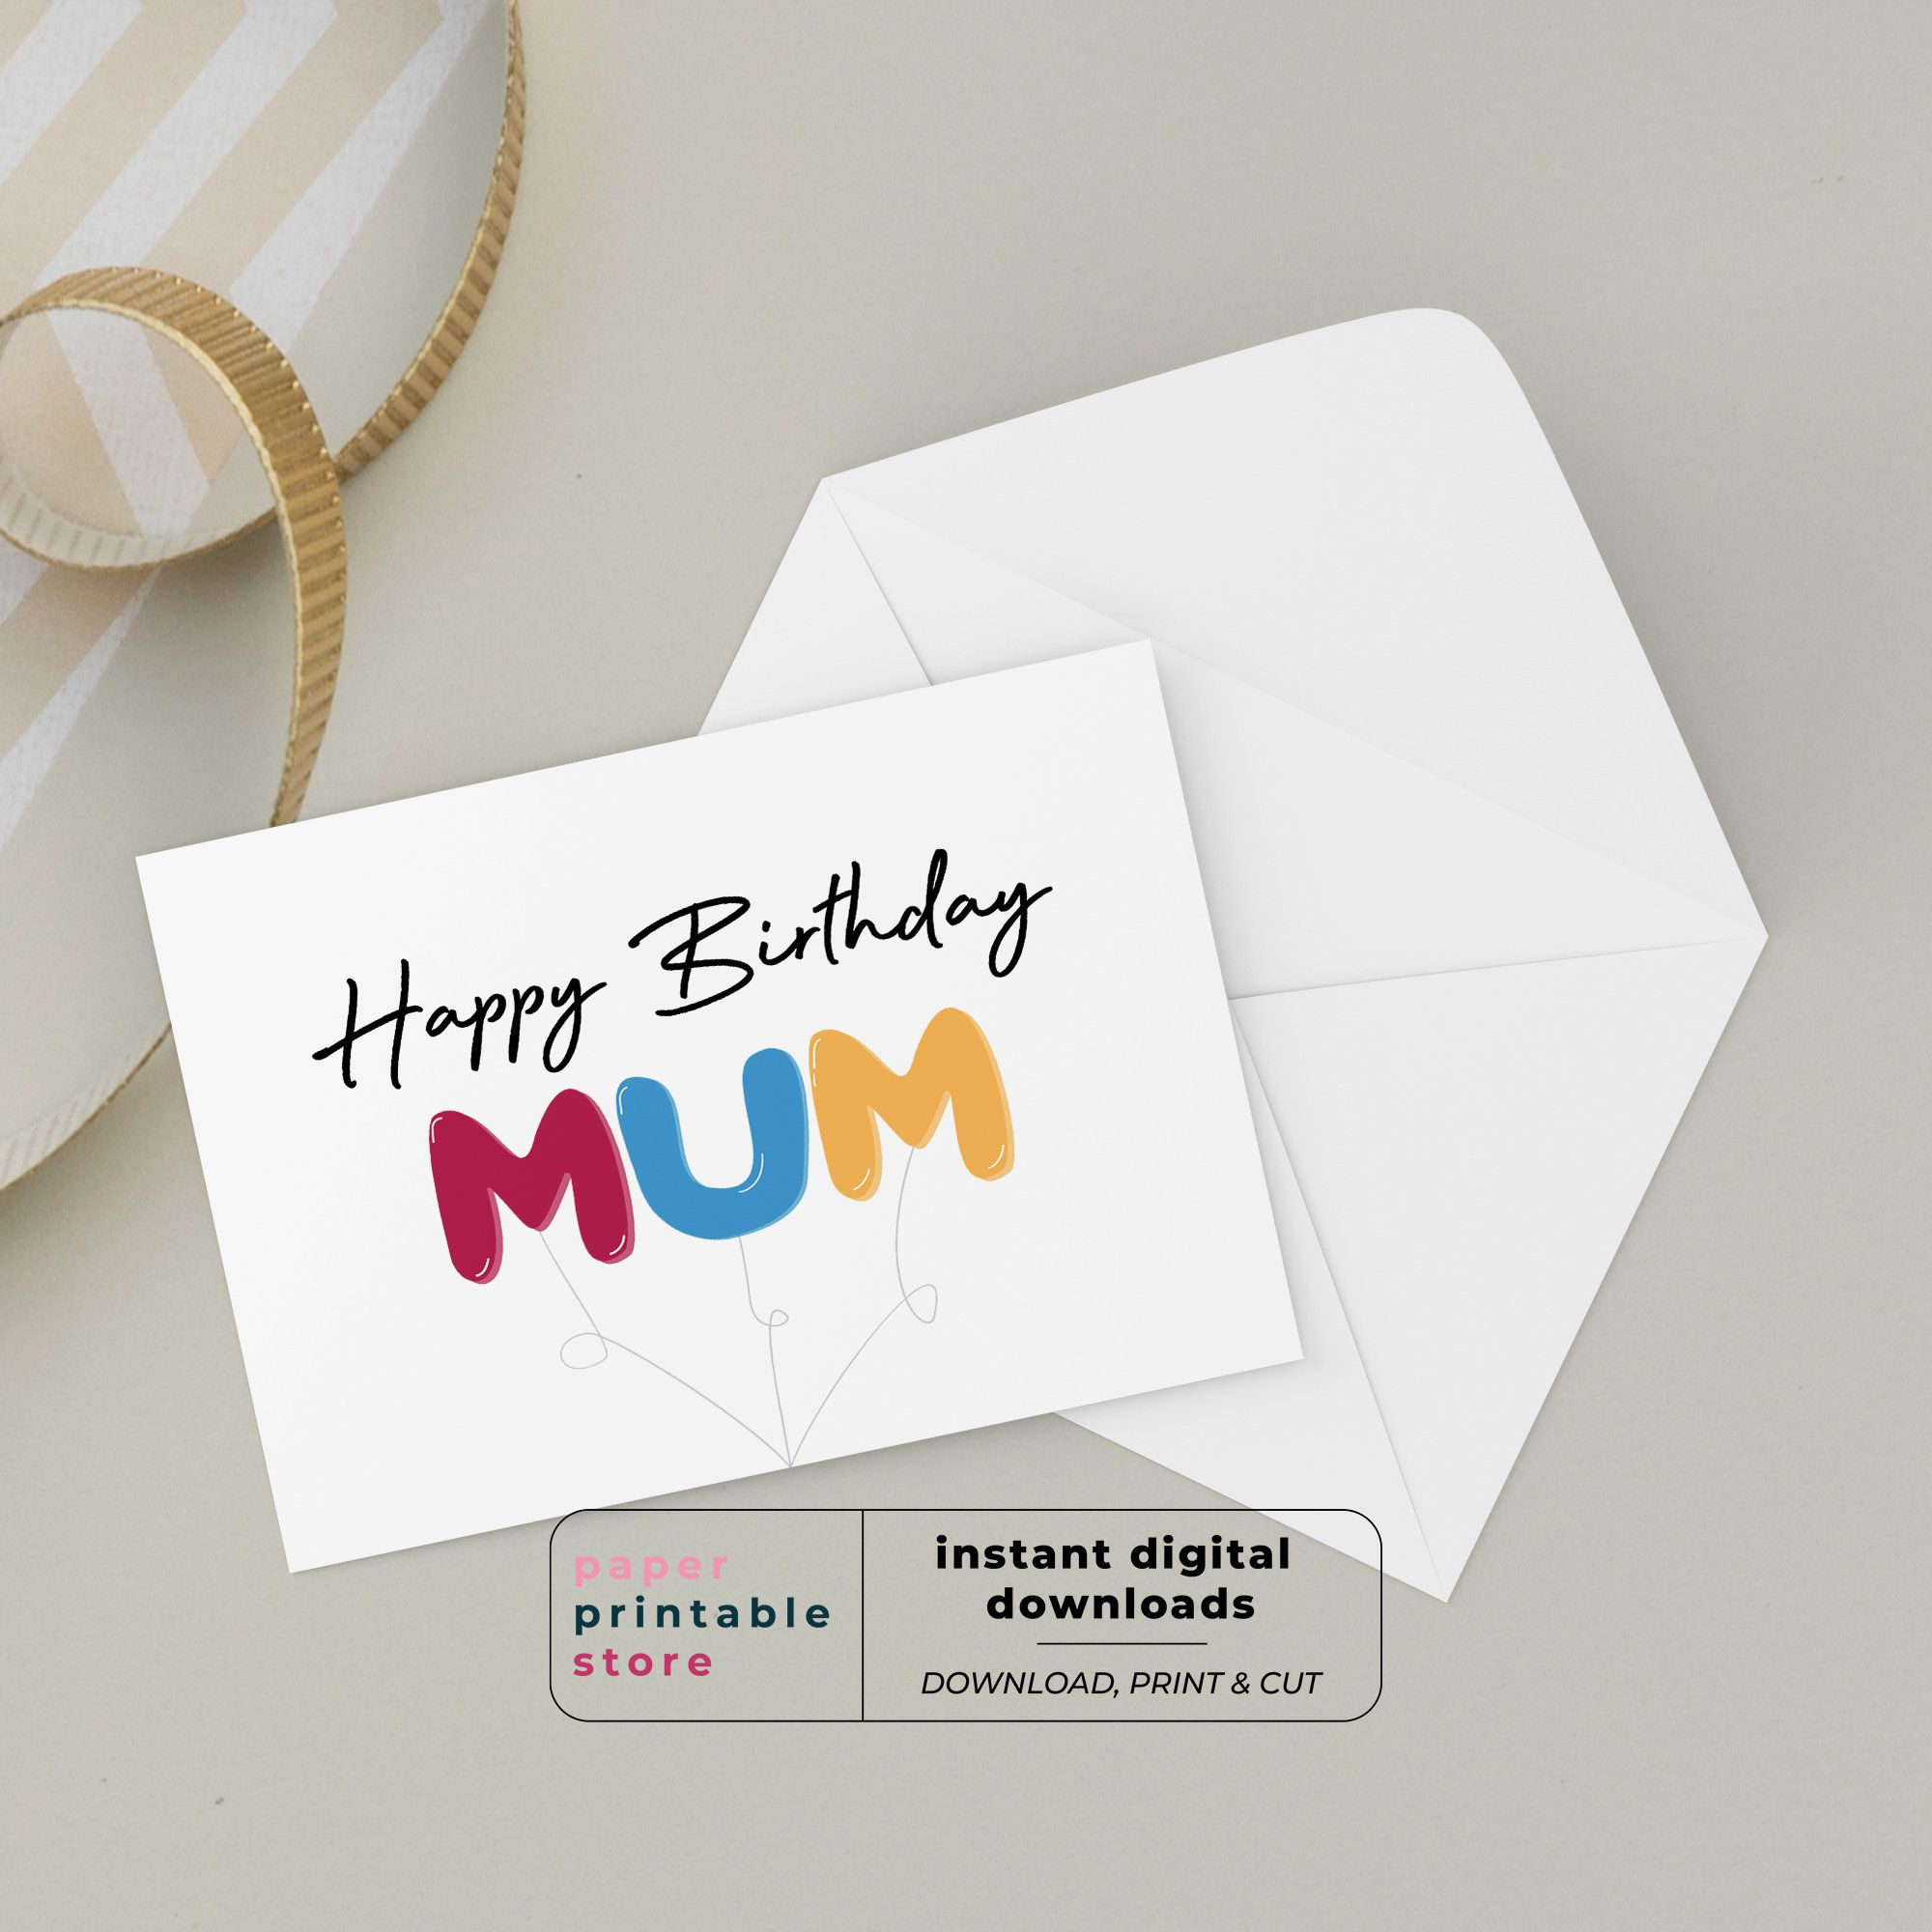 Excited To Share This Item From My Etsy Shop Birthday Card For Mum Mum Birthday Card Happy Bir In 2021 Birthday Cards Birthday Cards For Mom Birthday Cards For Mum